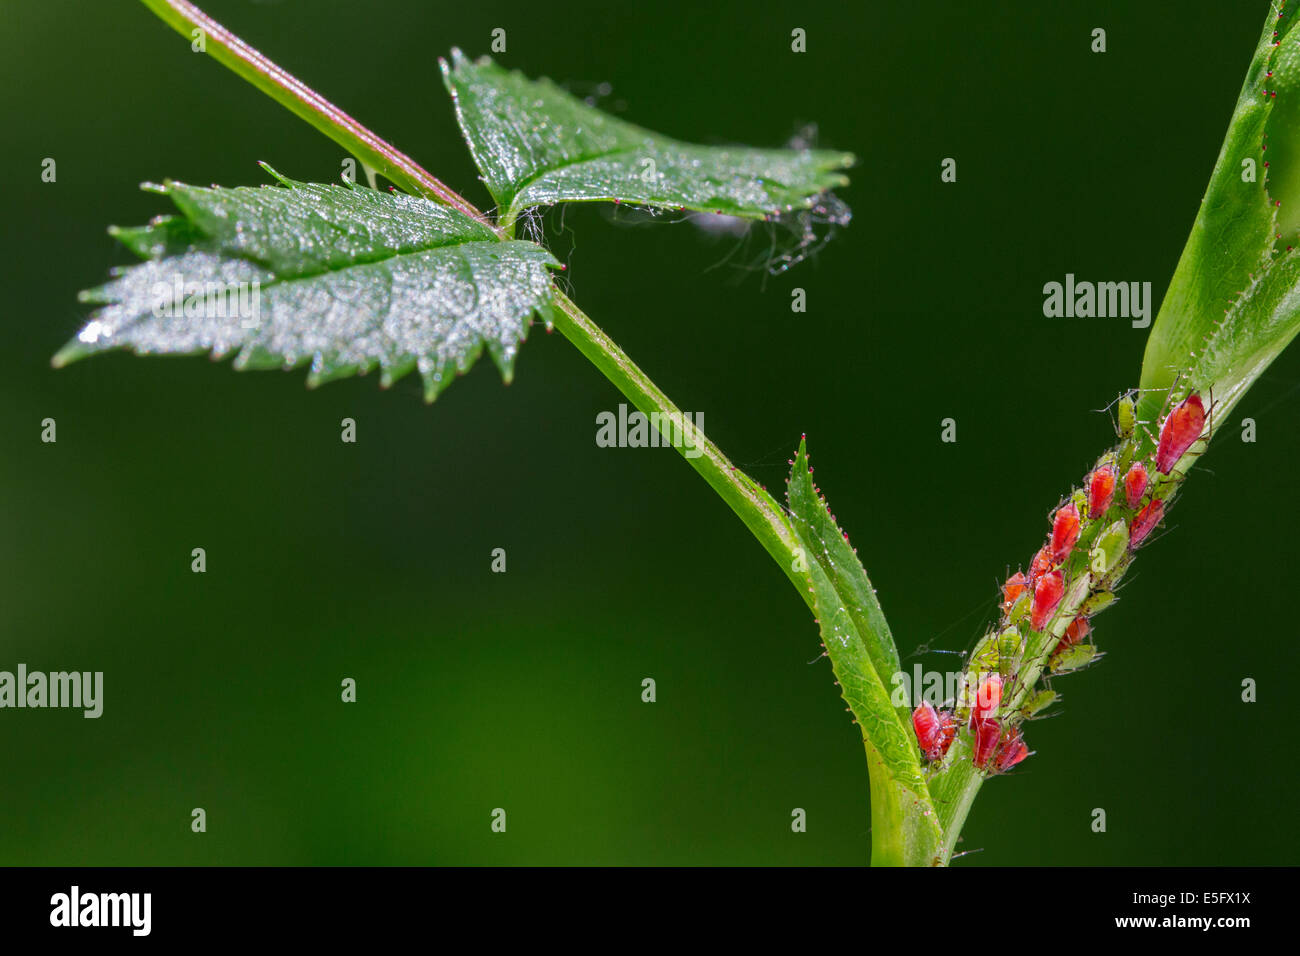 Red and green aphids / plant lice (Aphidoidea) on plant - Stock Image